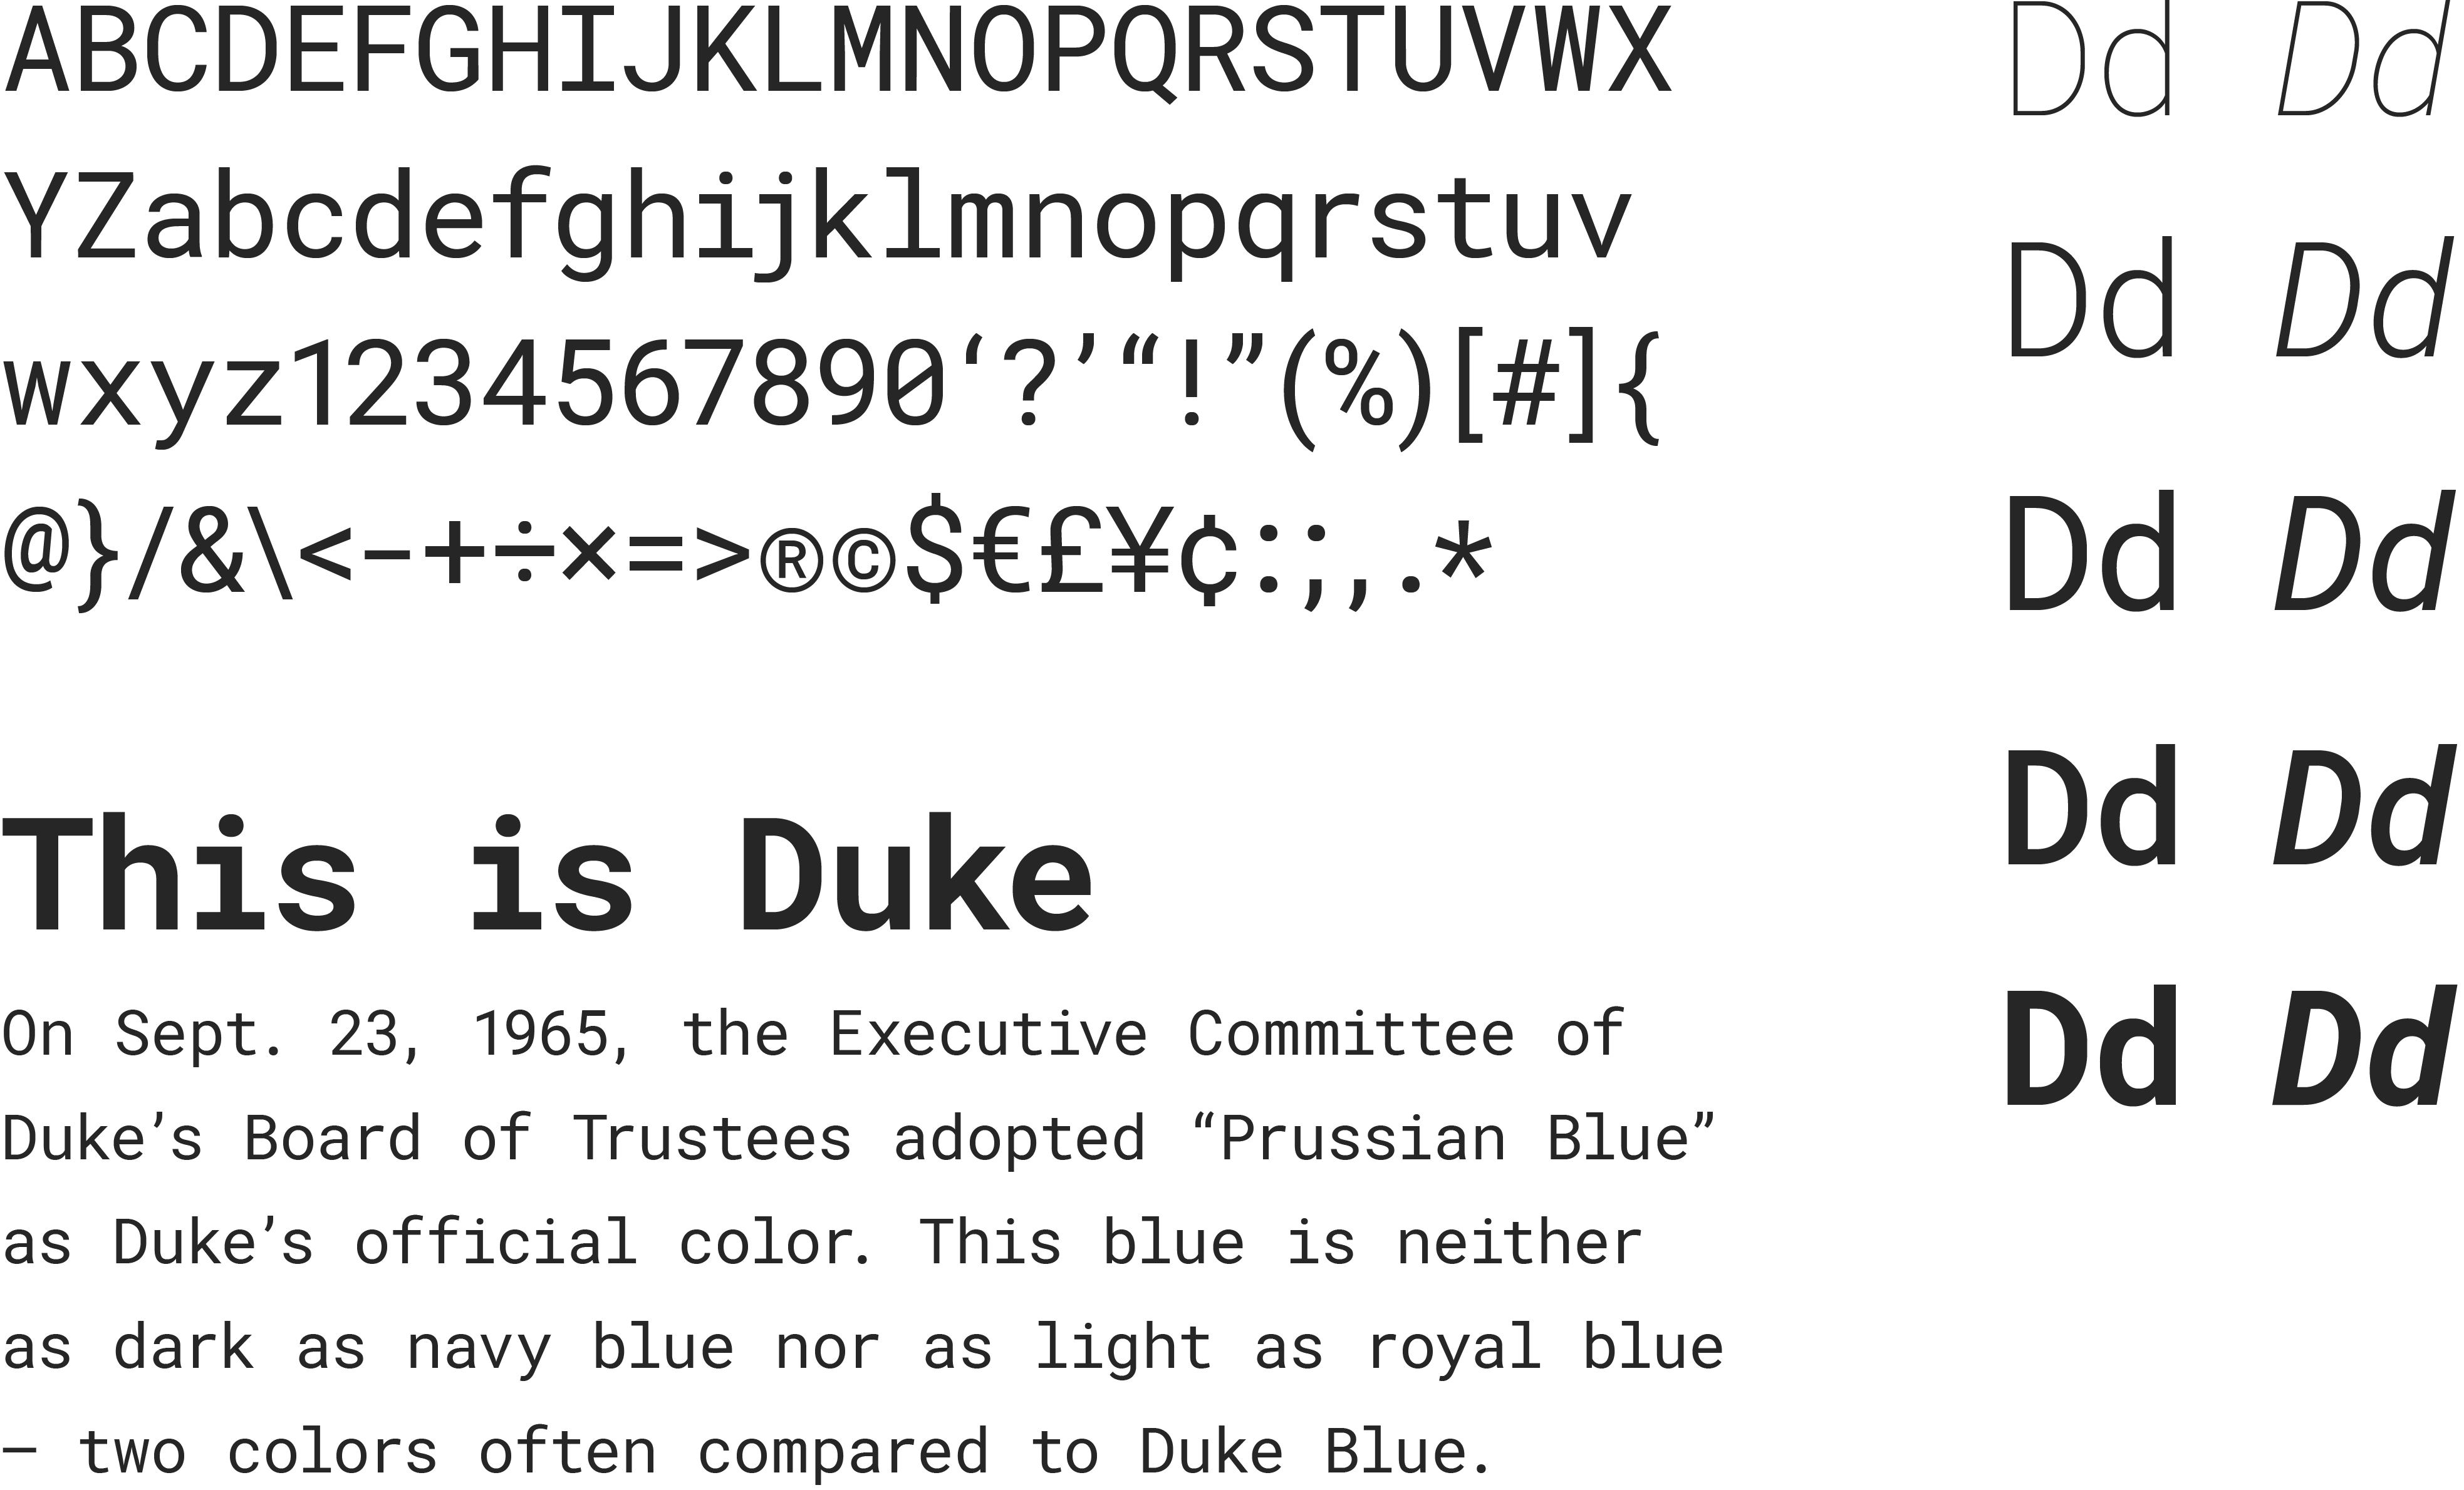 A specimen of the Roboto Mono, a monospaced typeface. Included are a list of English characters, the font weights & styles and a sample paragraph of text rendered in the typeface.